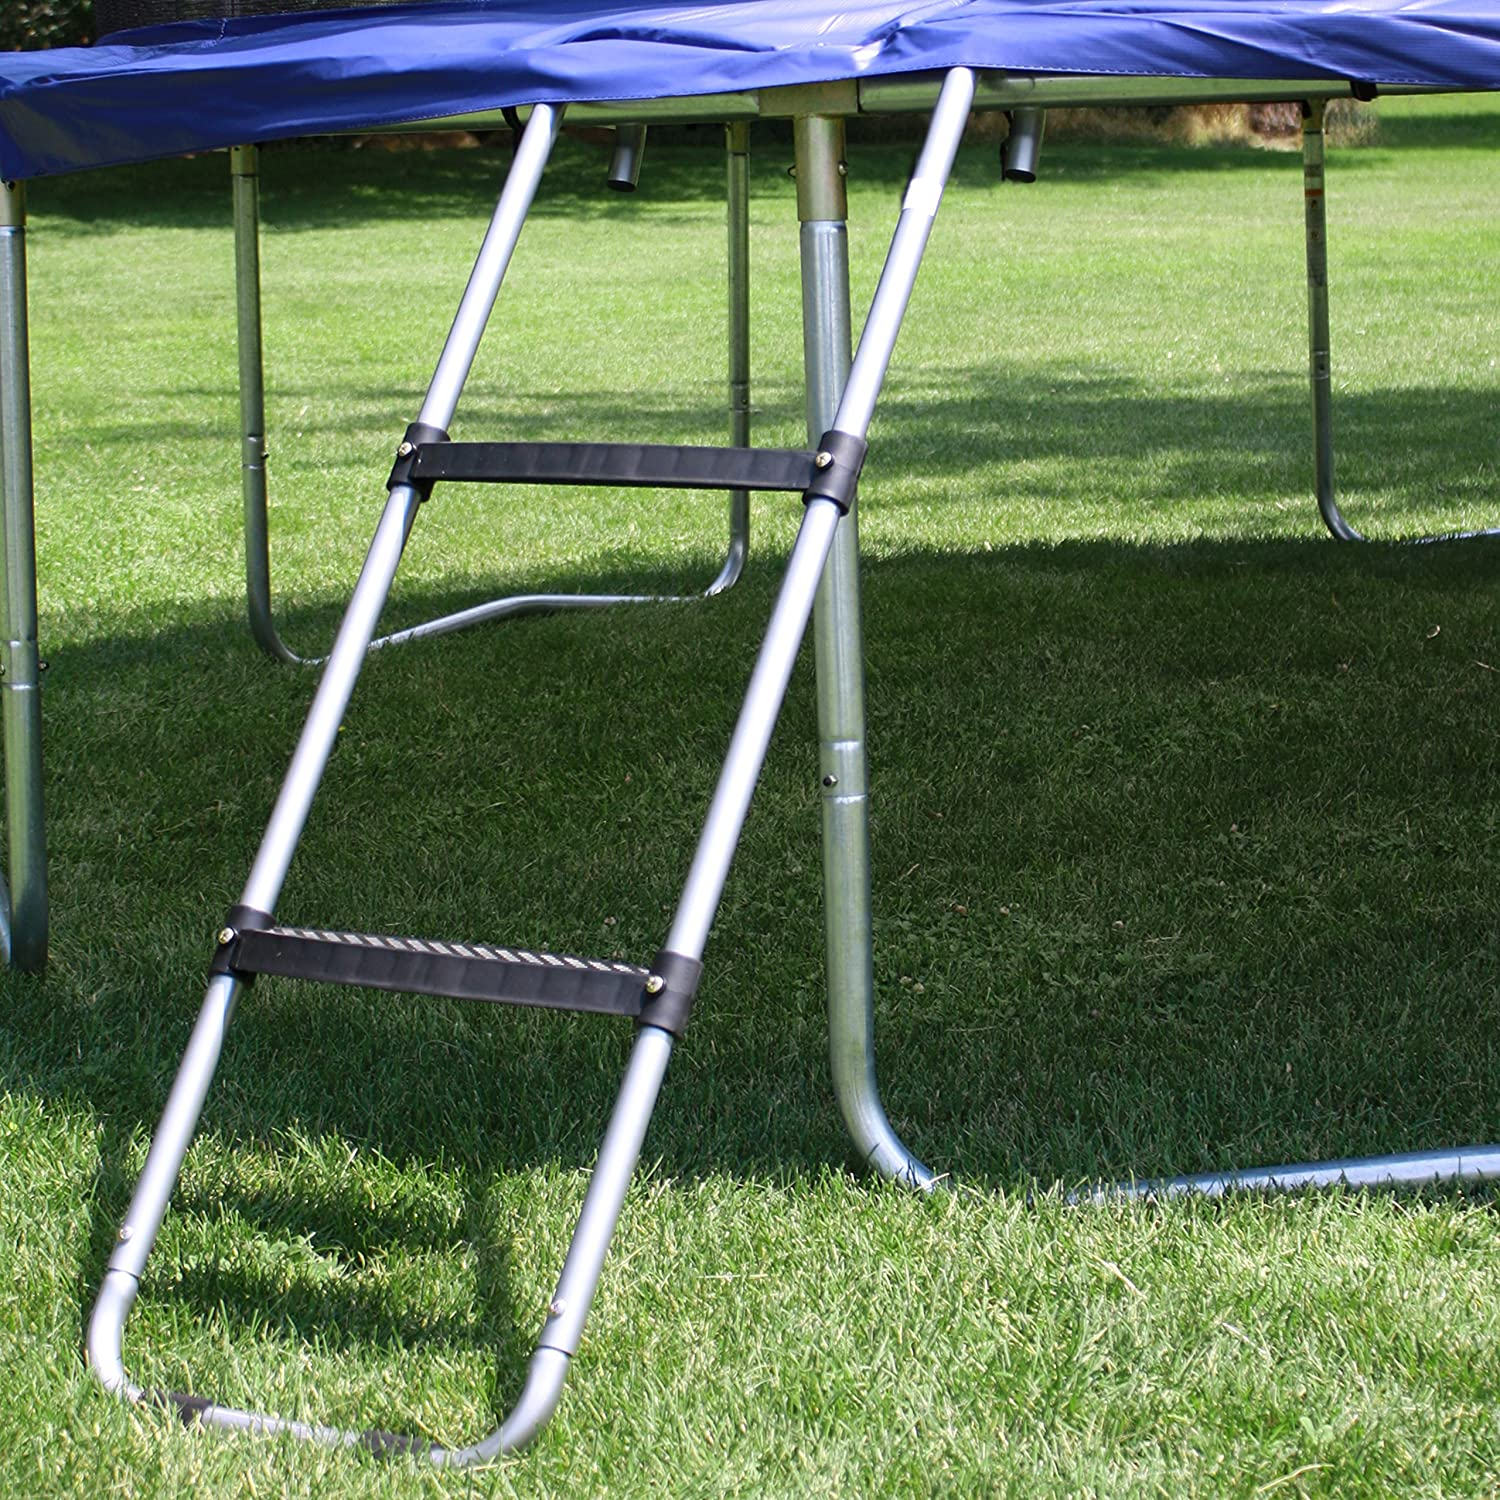 Amazon.com : Skywalker Trampolines Wide Step Ladder : Sports U0026 Outdoors